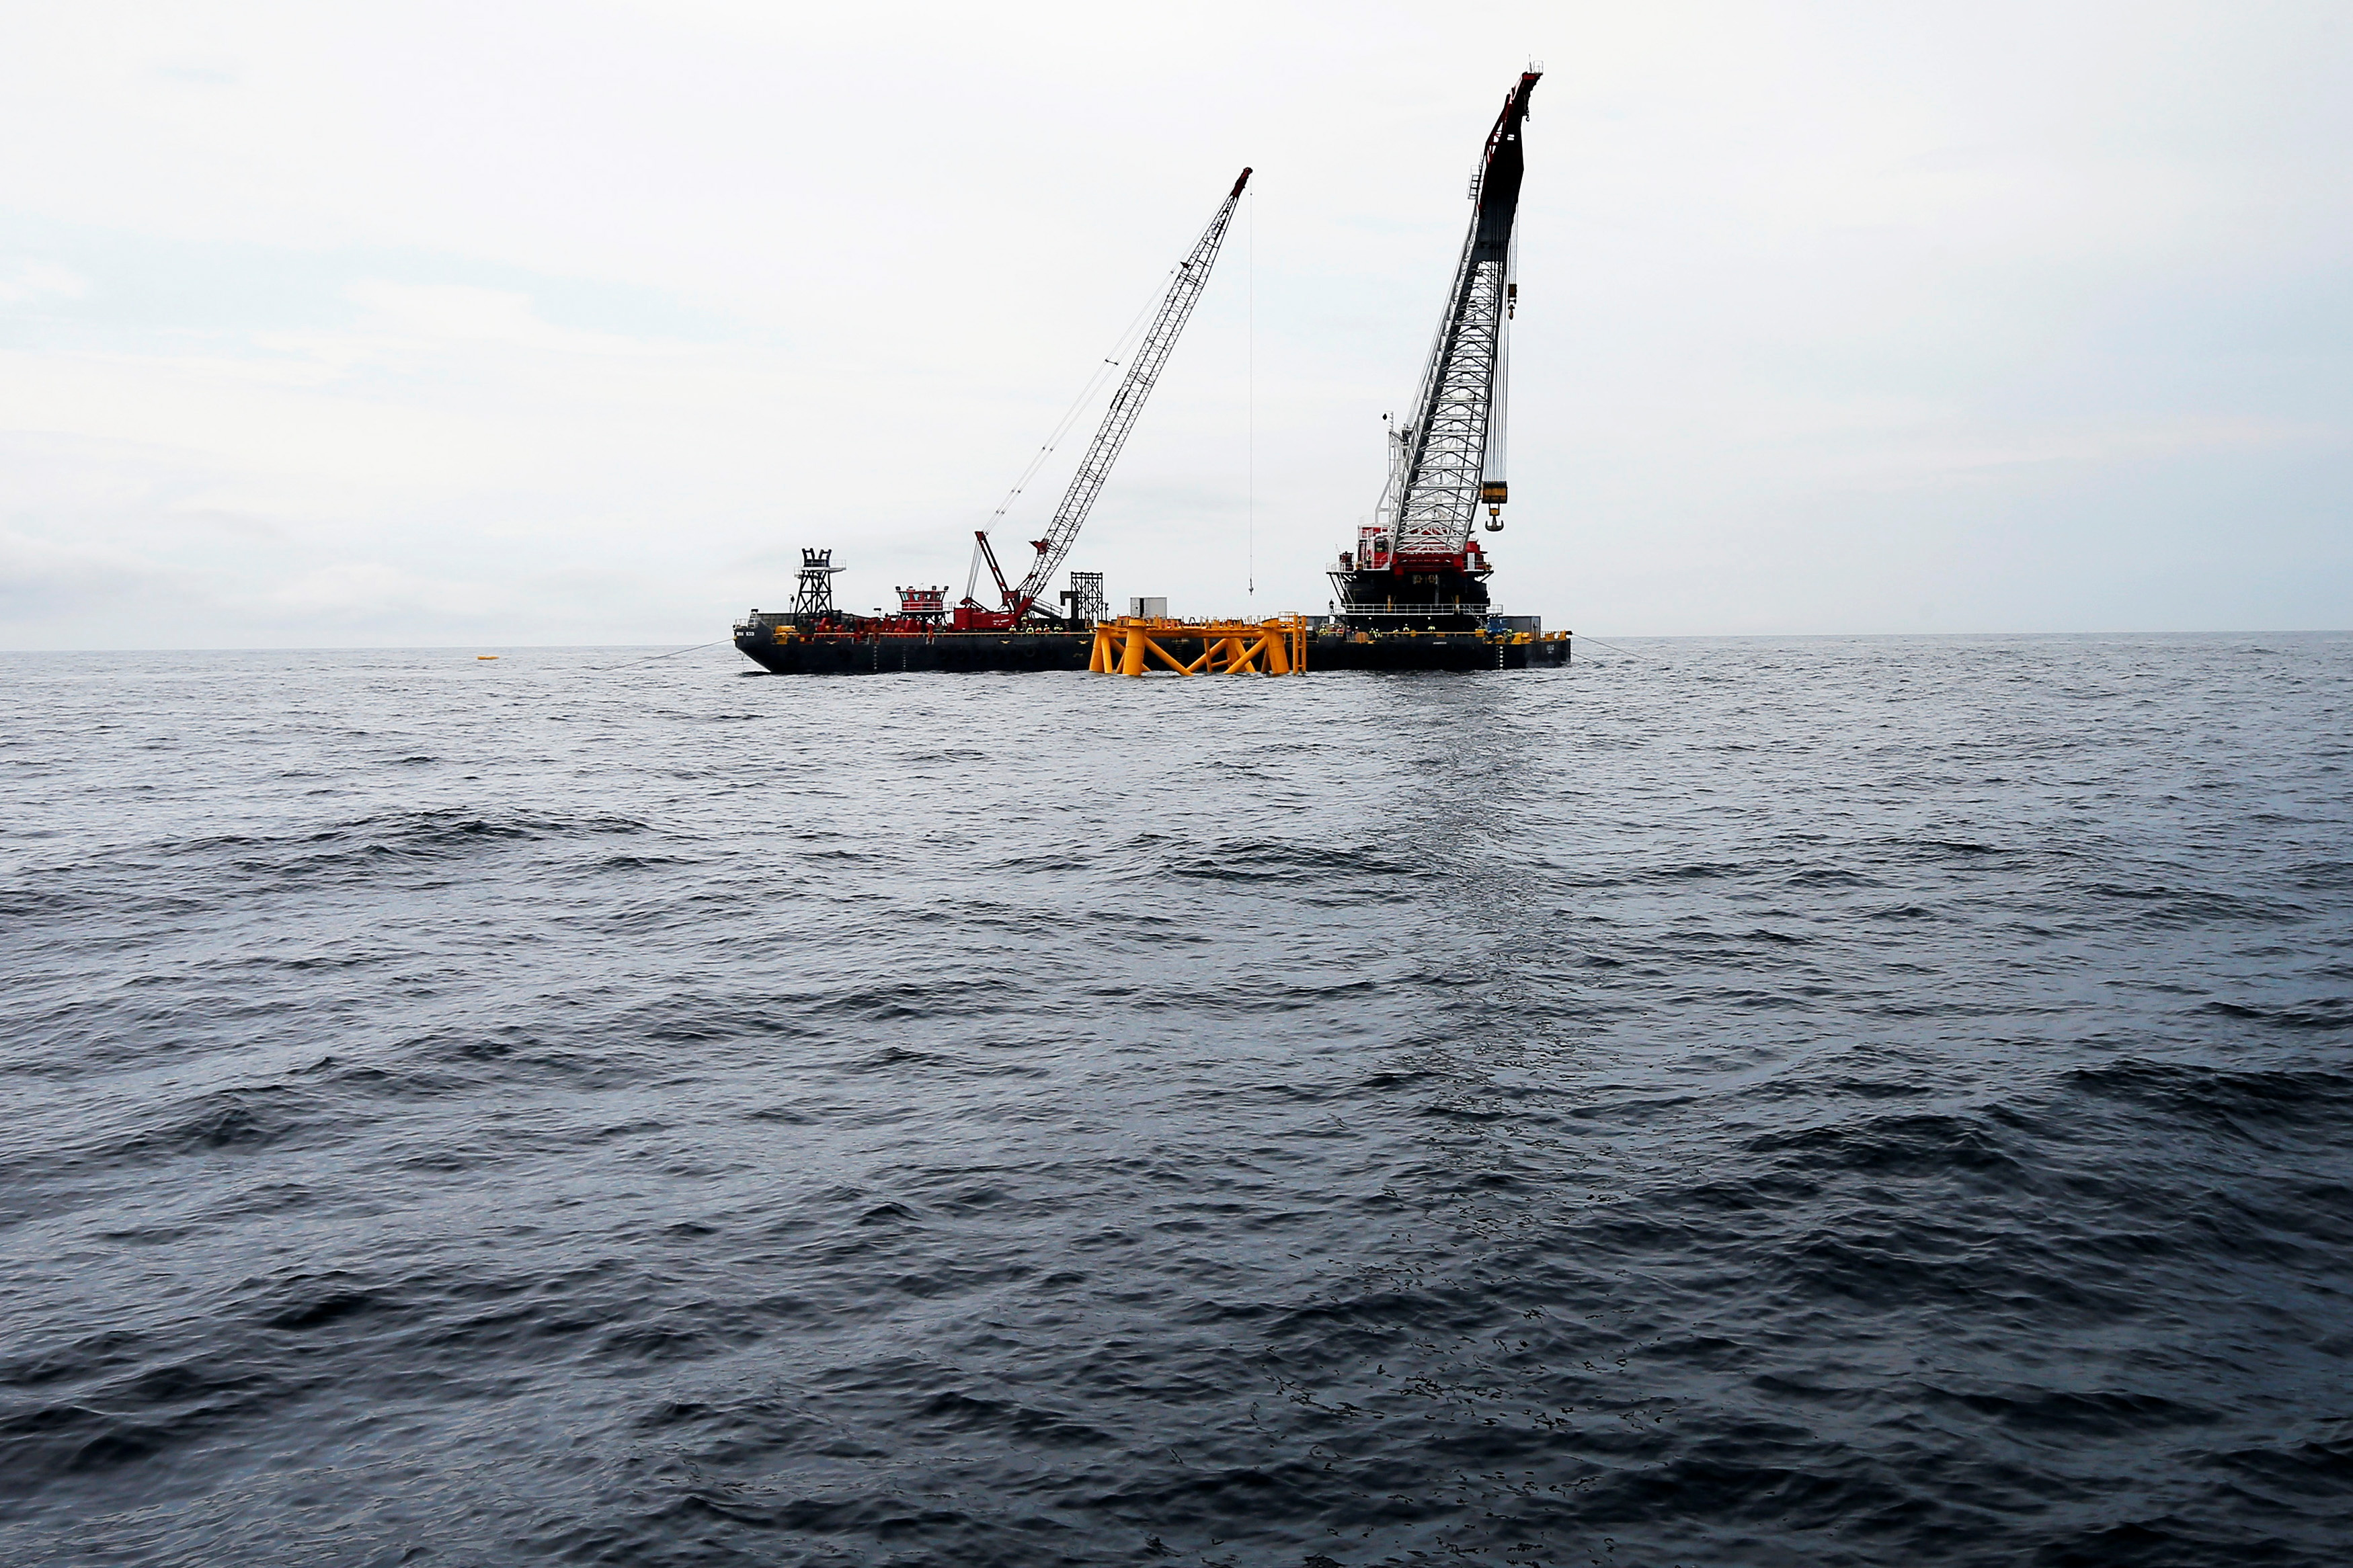 A crane hangs over the first jacket support structure installed to support a turbine for a wind farm in the waters of the Atlantic Ocean off Block Island, Rhode Island July 27, 2015. Deepwater Wind, a planned five-turbine, 30-megawatt wind farm off the coast of Block Island, would be North America's first offshore wind farm, a milestone the company says could pave the way for an industry long established in Europe but still struggling with opposition in the United States.        REUTERS/Brian Snyder/File Photo